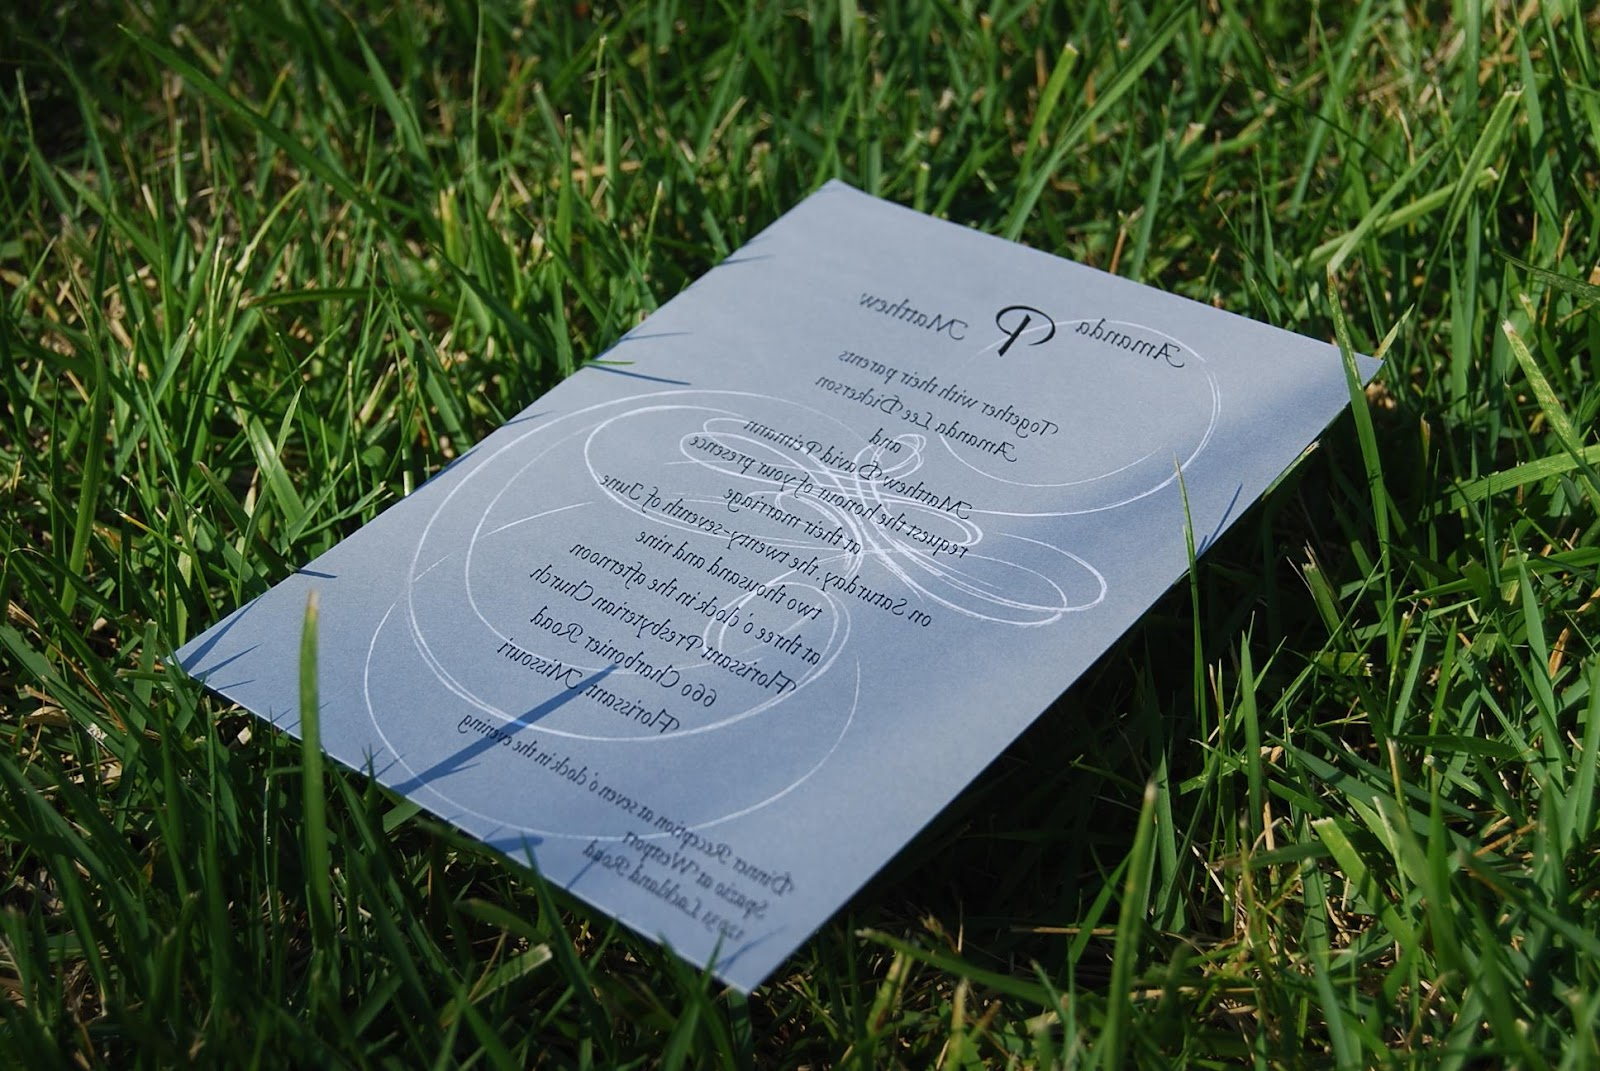 Some cool wedding invitation images: Wedding Invitation wedding invitation